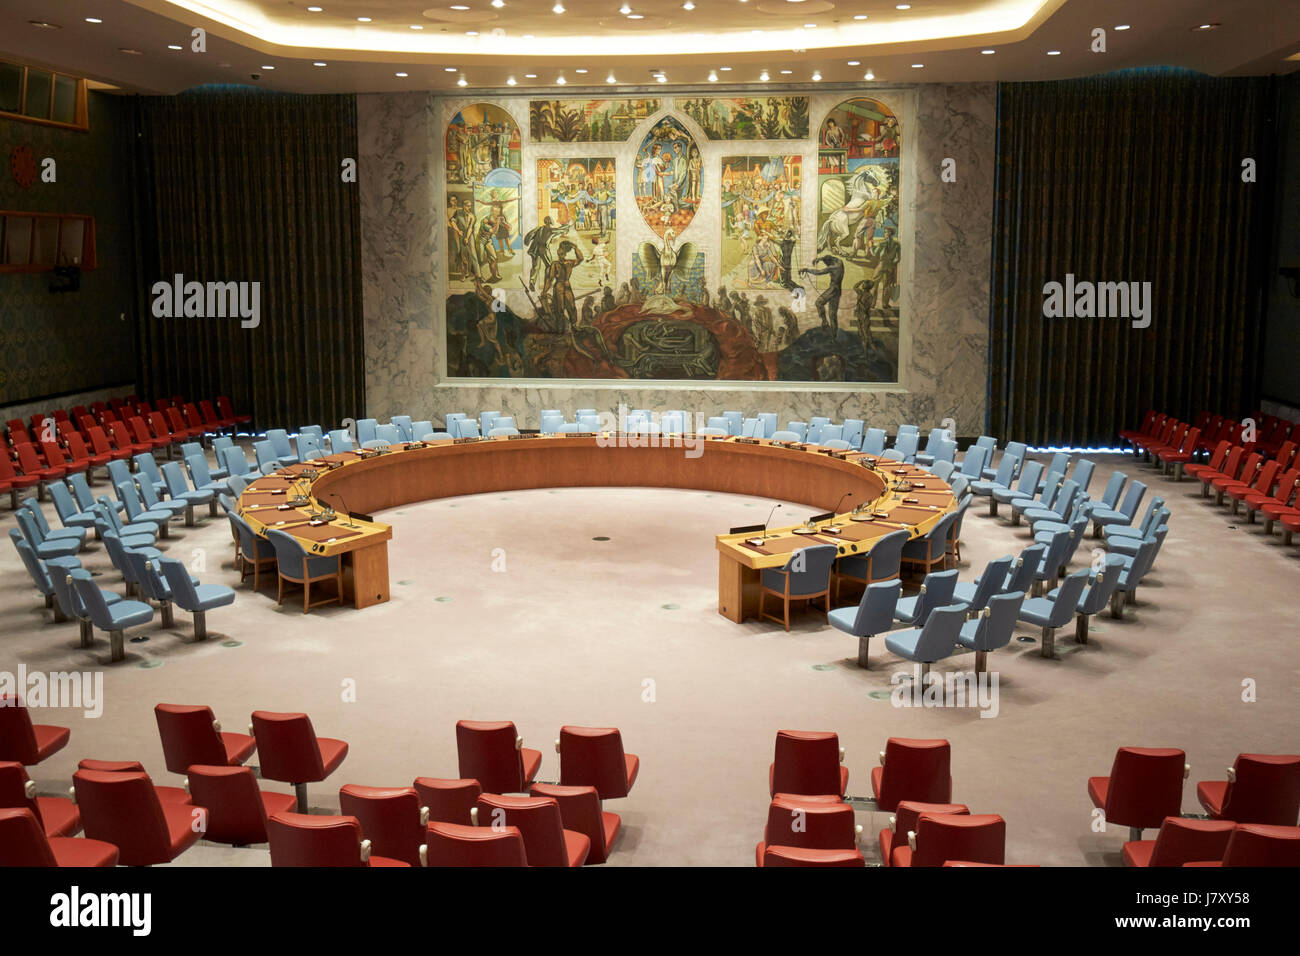 security council chamber at the United Nations headquarters building New York City USA - Stock Image